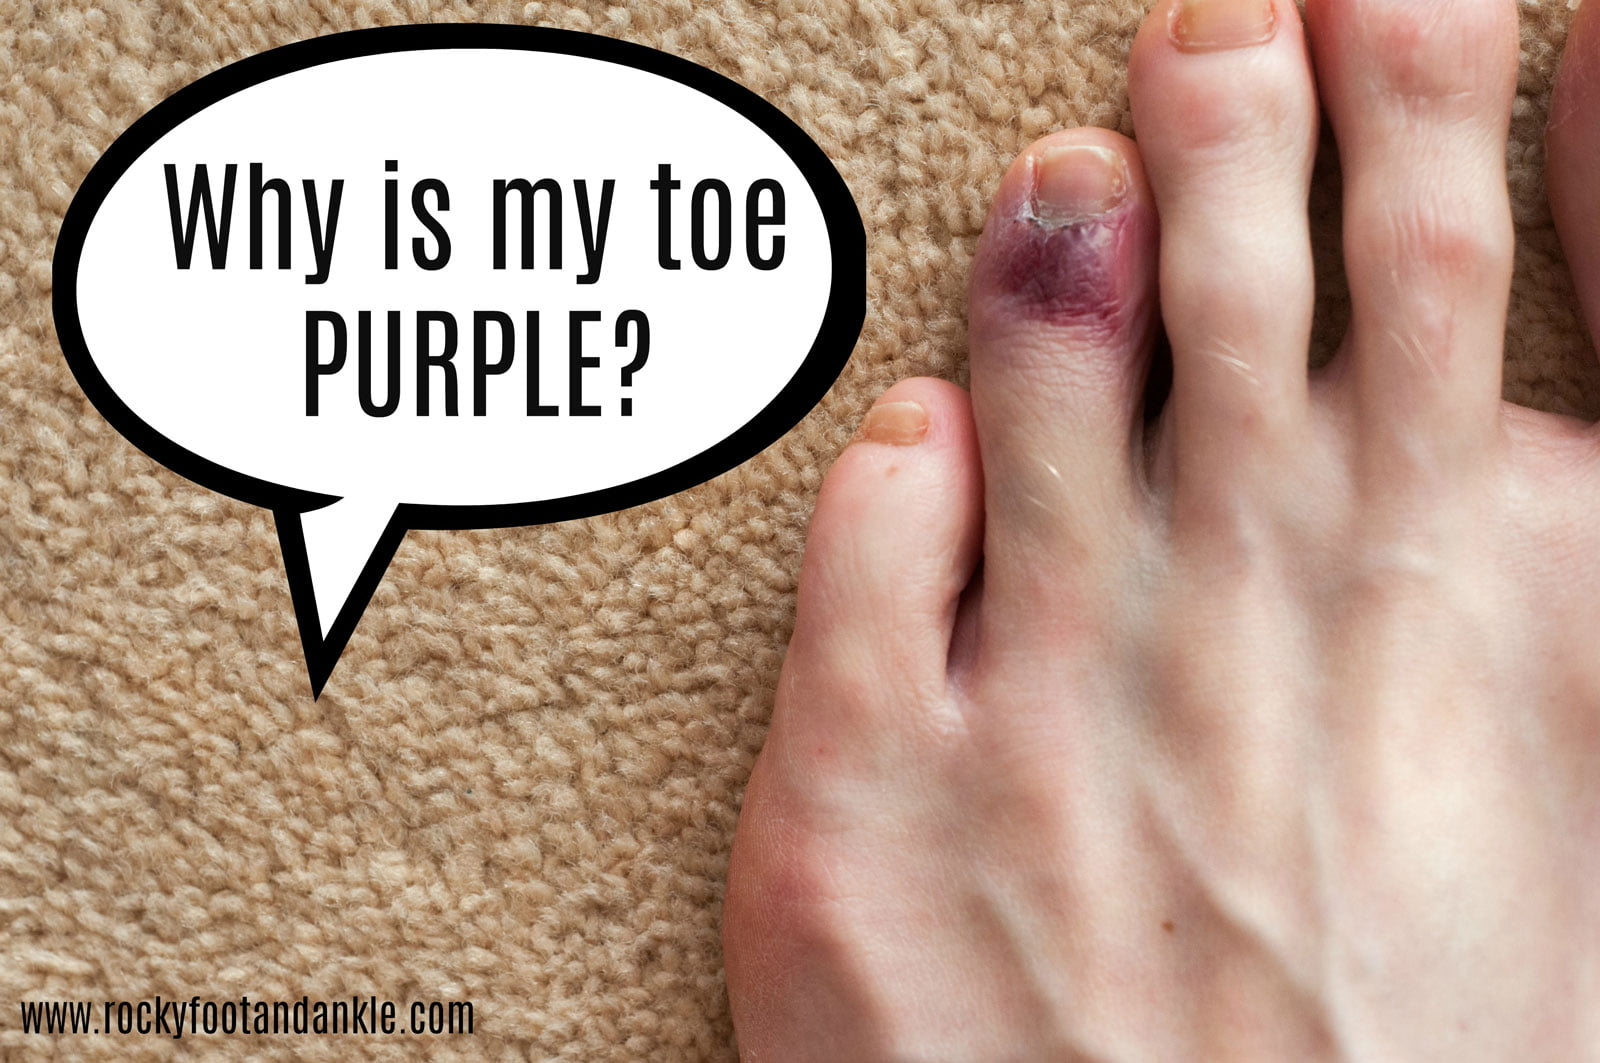 why is my toe purple?